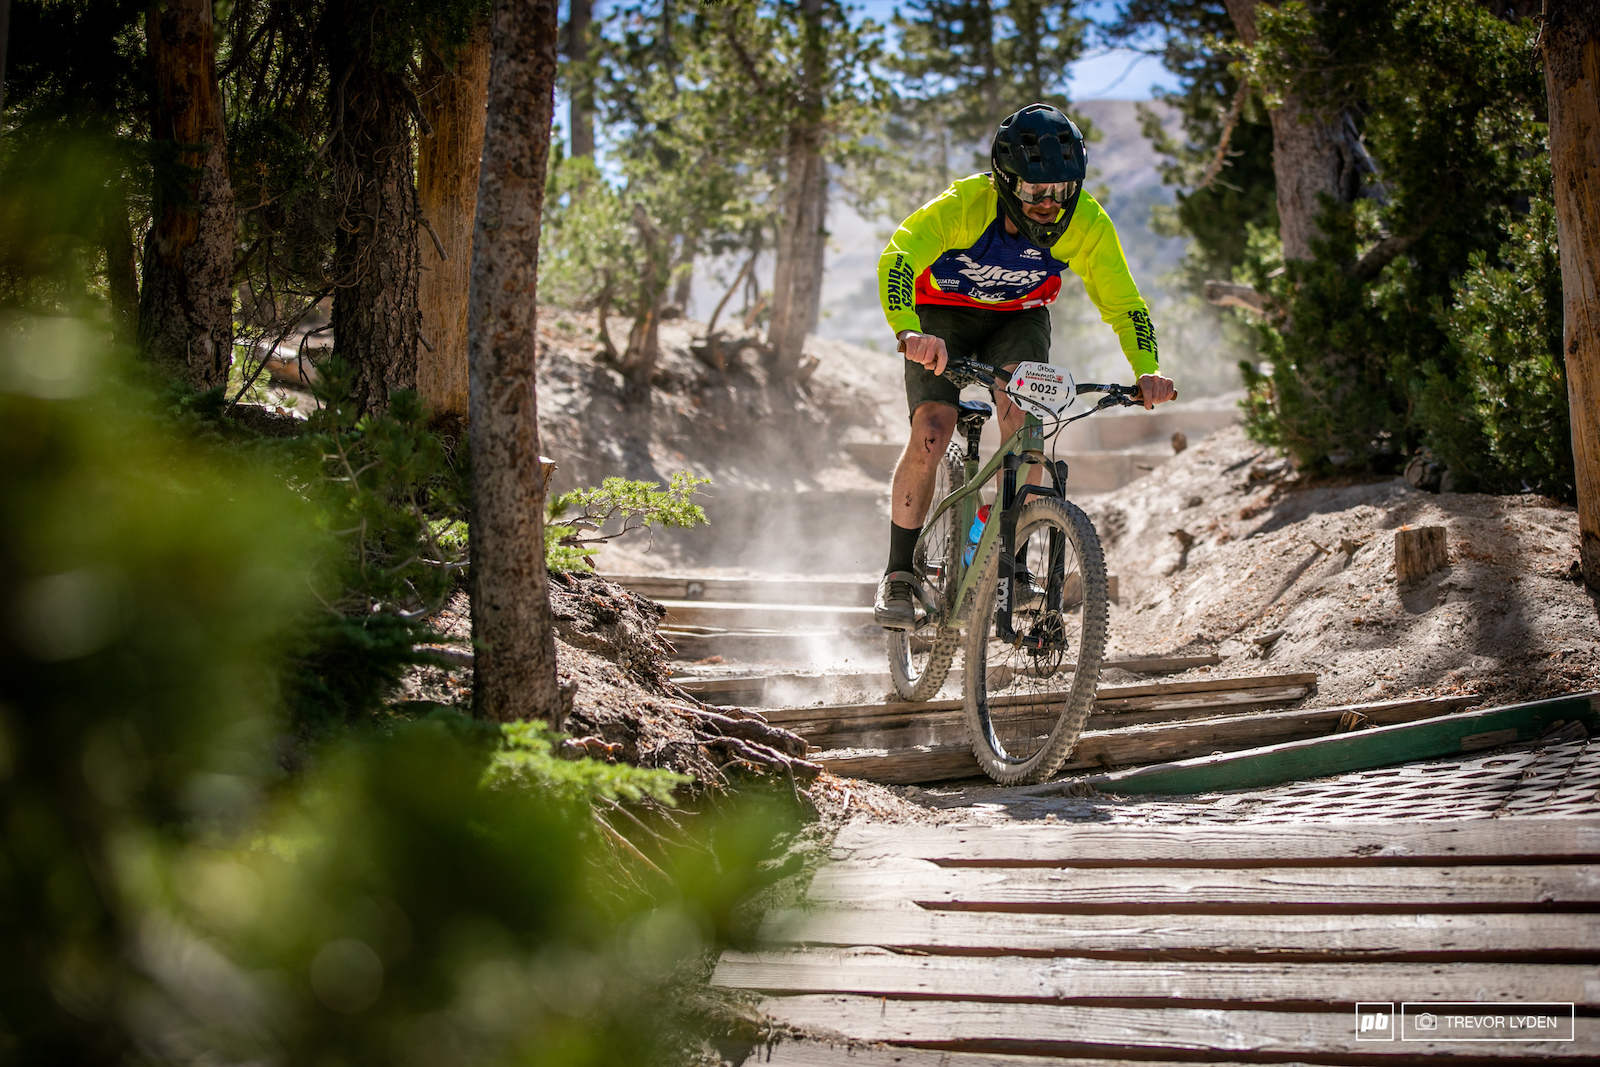 Cole Kersey was on a hardtail all day that can t be easy on the bike or the body